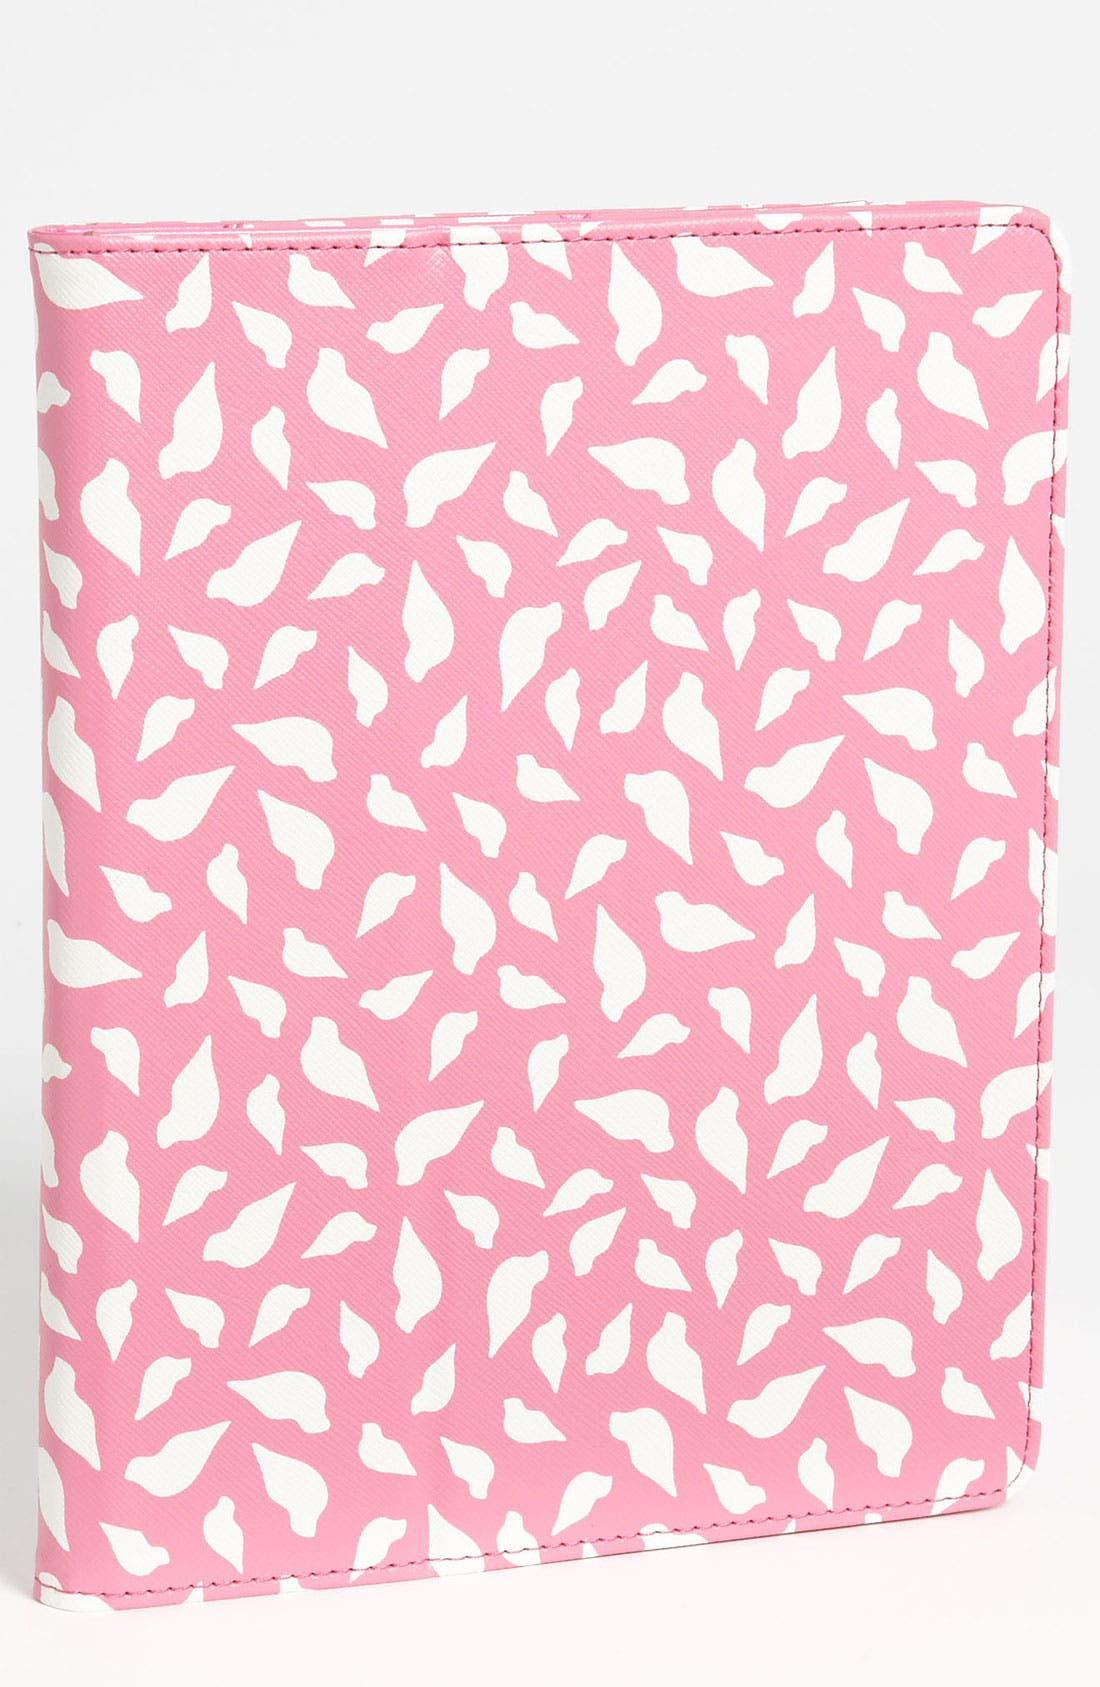 Alternate Image 1 Selected - Diane von Furstenberg 'Printed Lips' iPad Cover